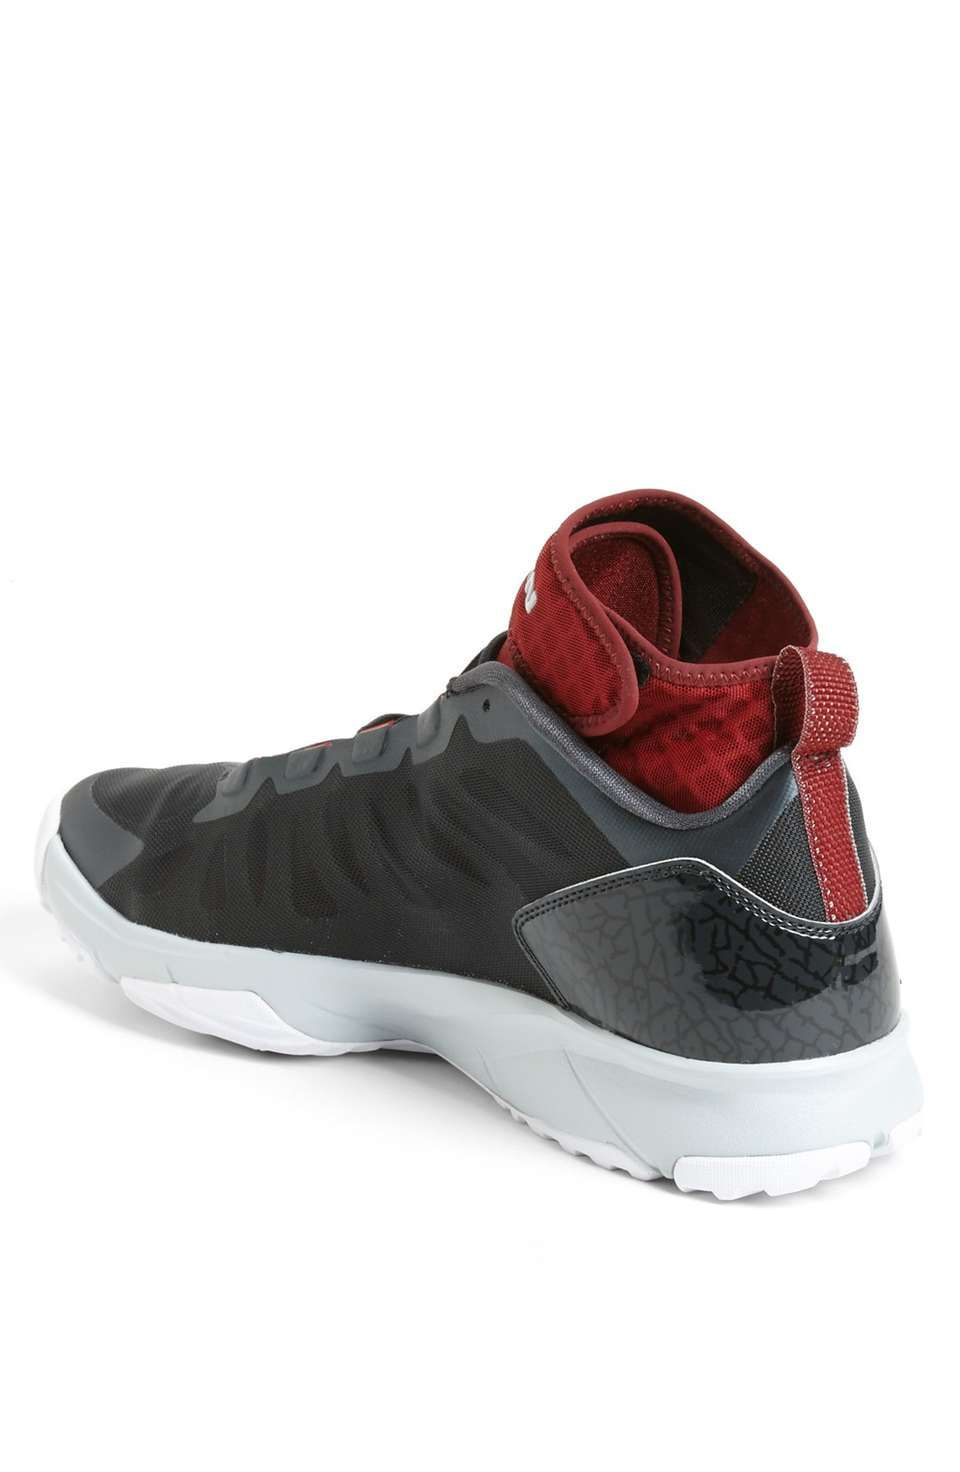 Nike 'Jordan Dominate Pro' Training Shoe (Men) on Wantering | $125 | gifts for the sporty guy | mens shoes | mens sneakers | running | mens training shoes | menswear | mens style | mens fashion | wantering http://www.wantering.com/mens-clothing-item/nike-jordan-dominate-pro-training-shoe-men/af1Wd/